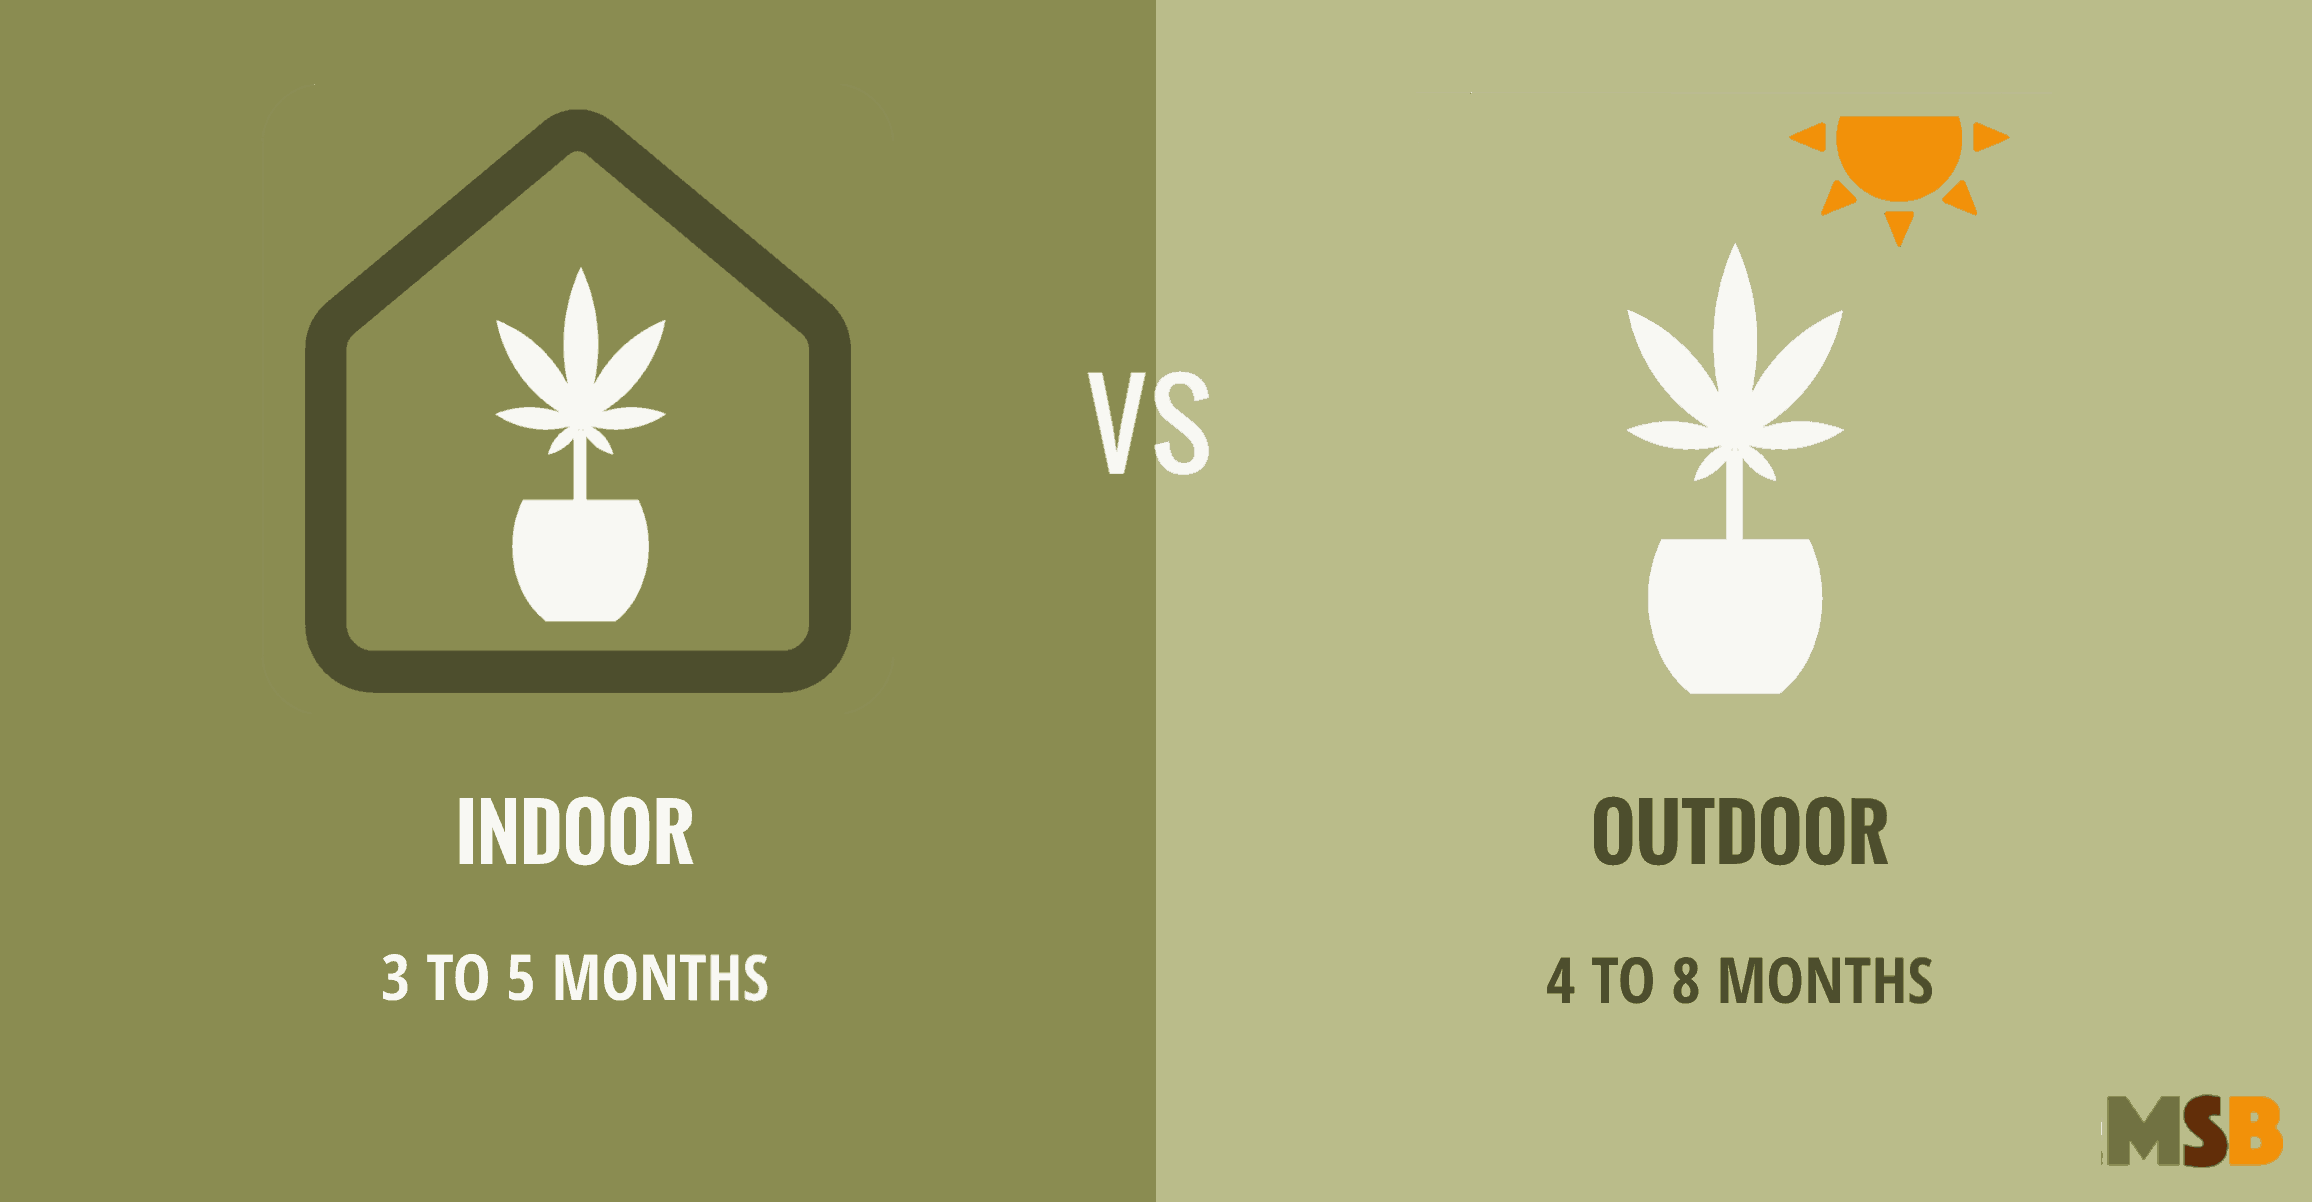 Stages of Marijuana Growth: from Seed to Harvest